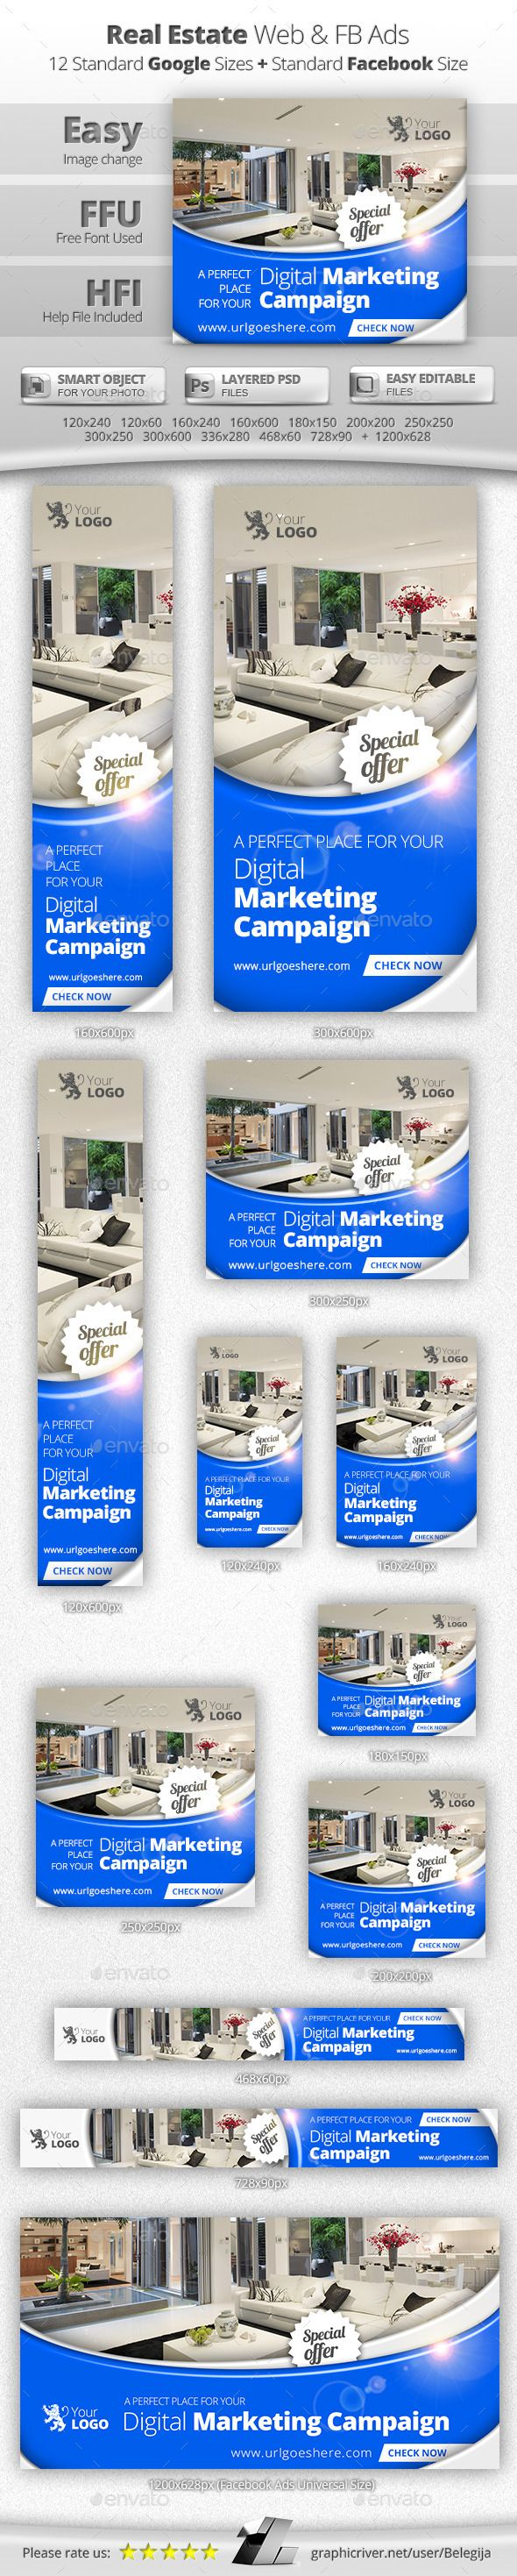 Real Estate Web Banners | Web banners, Banners and Real estate